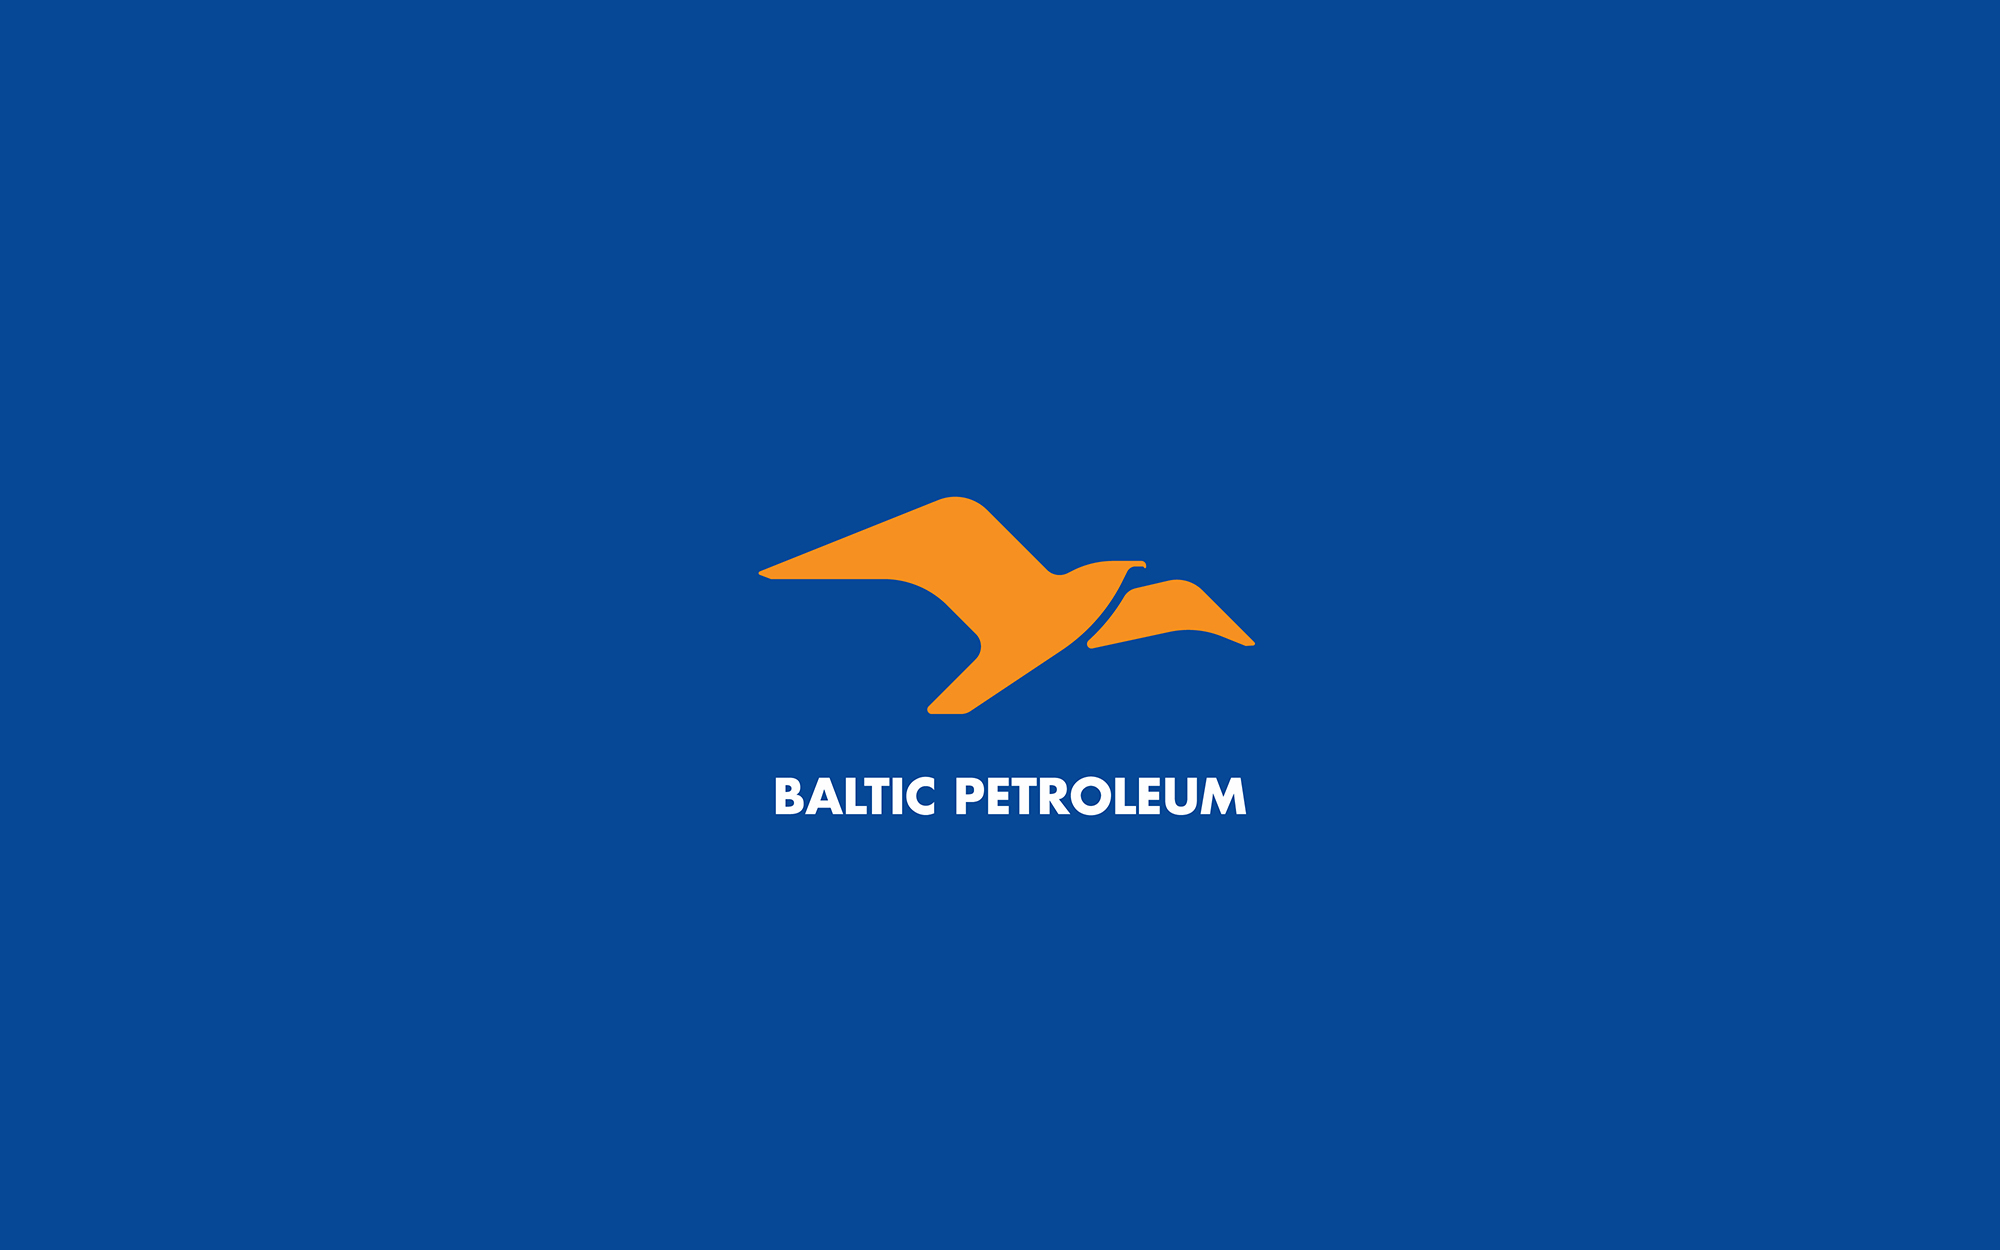 Baltic Petroleum logo square